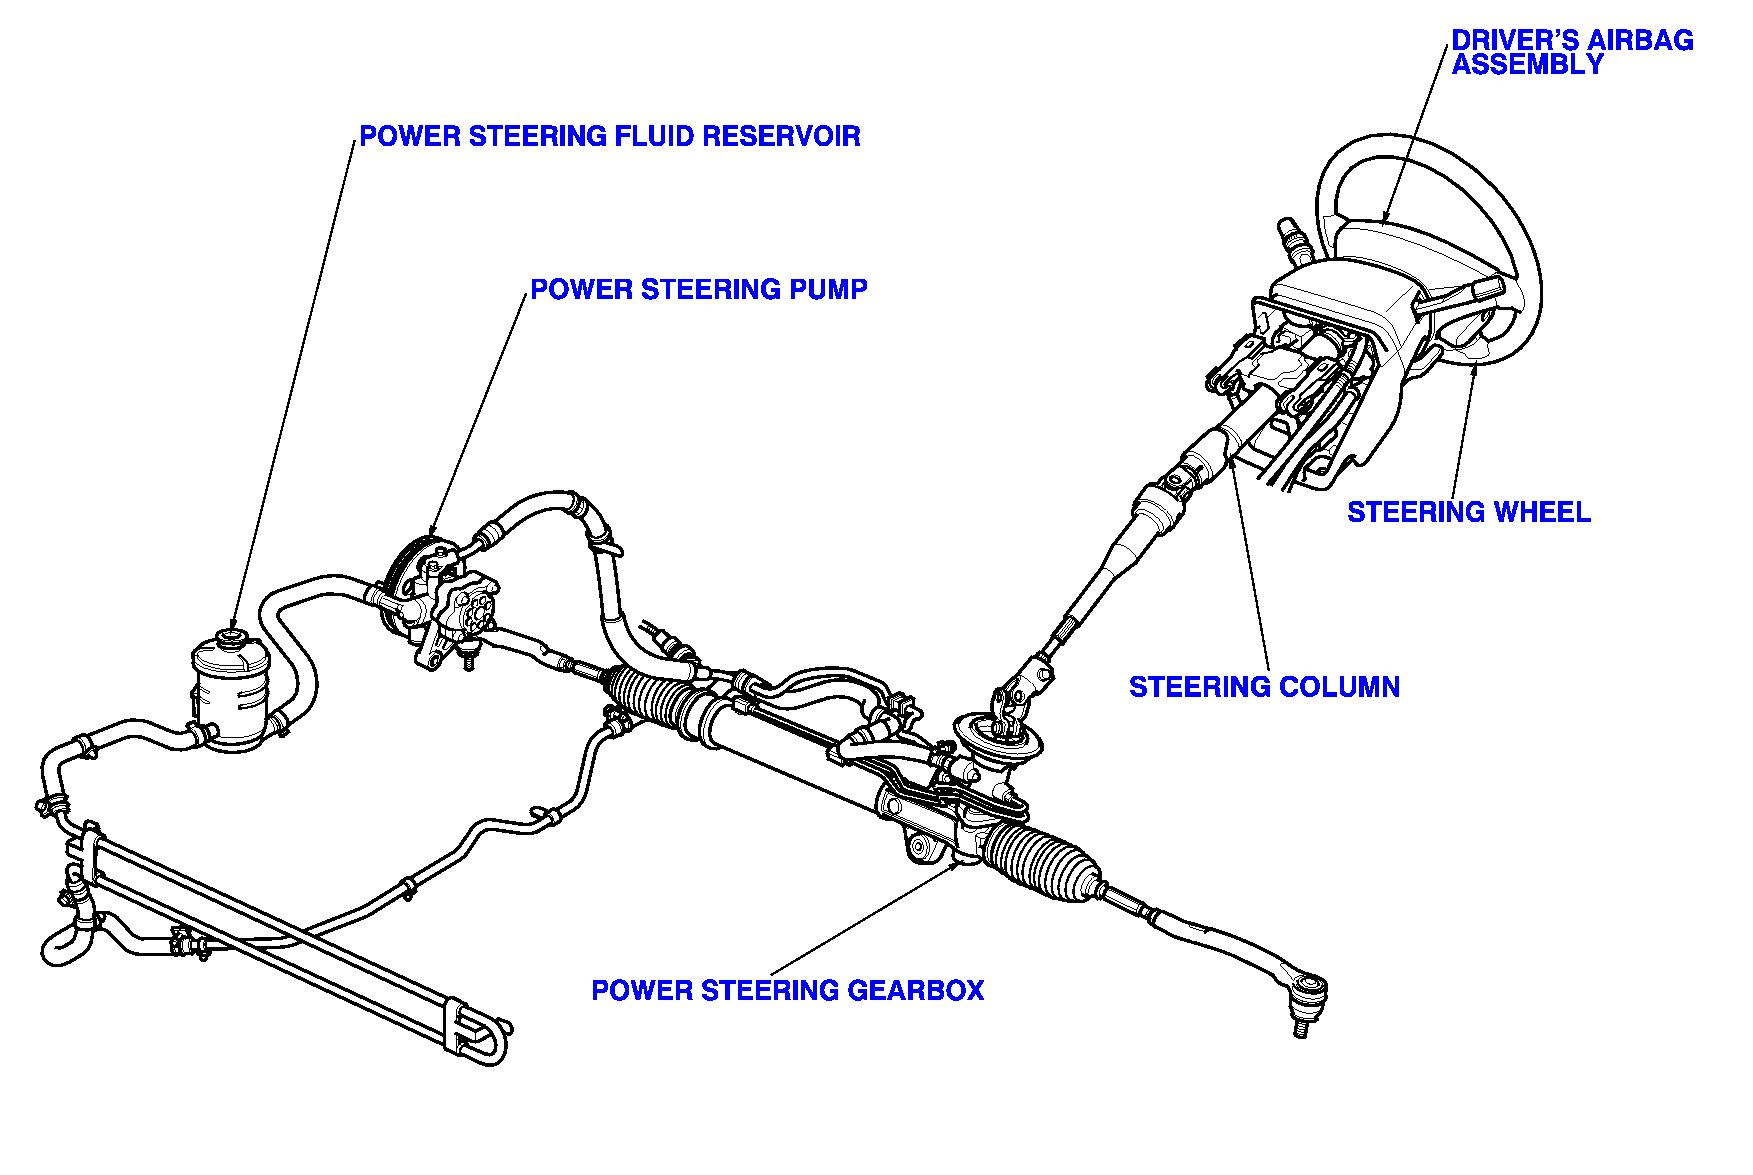 hight resolution of power steering diagram simple wiring schema kia sorento power steering wiring diagram electric electric wiring for a power steering pump diagram